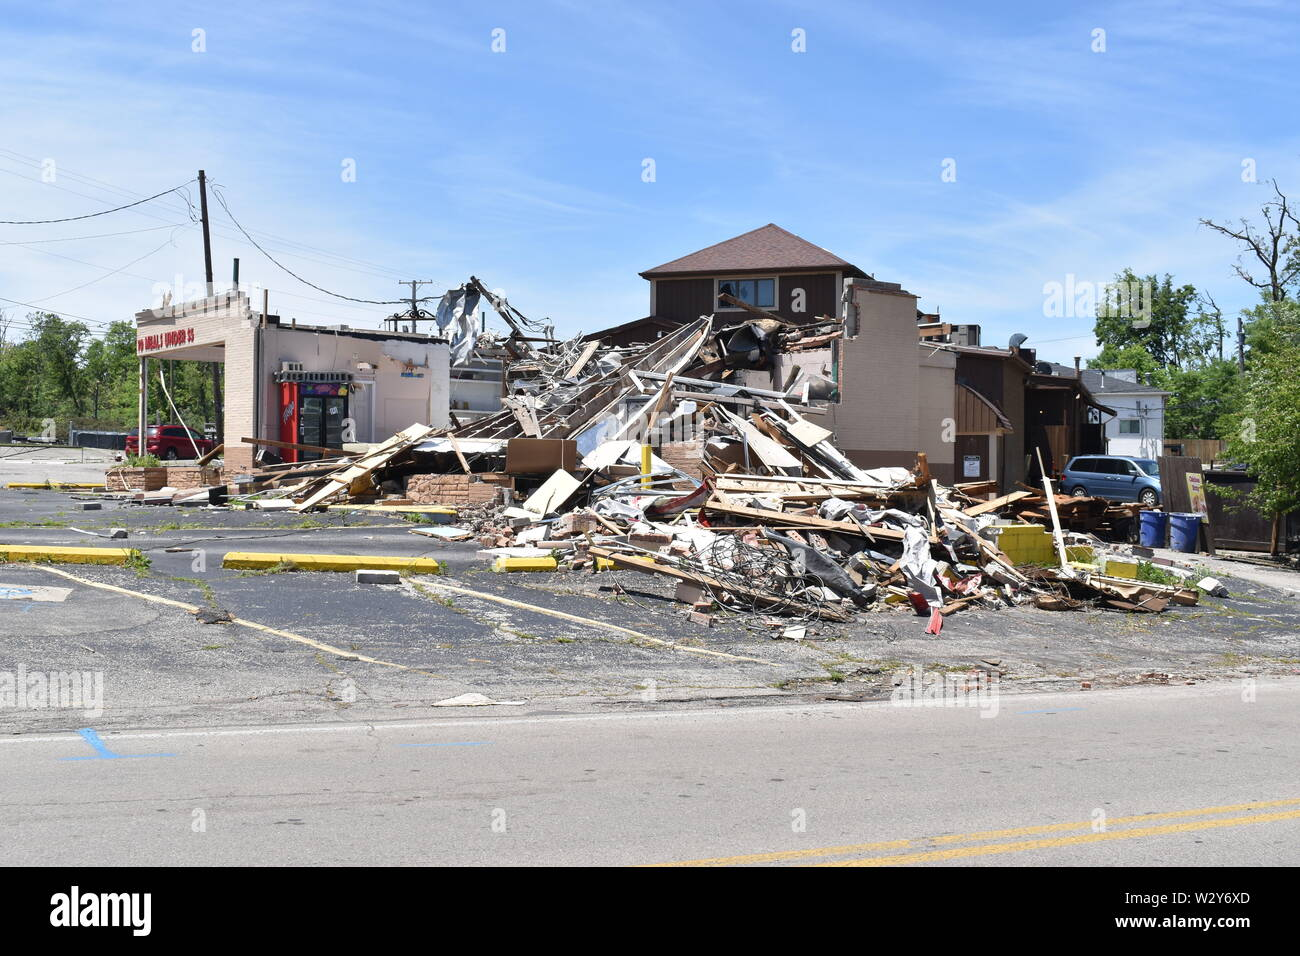 Tornado damage that incurred on May 27, 2019 in the Dayton, Ohio vicinity - Stock Image